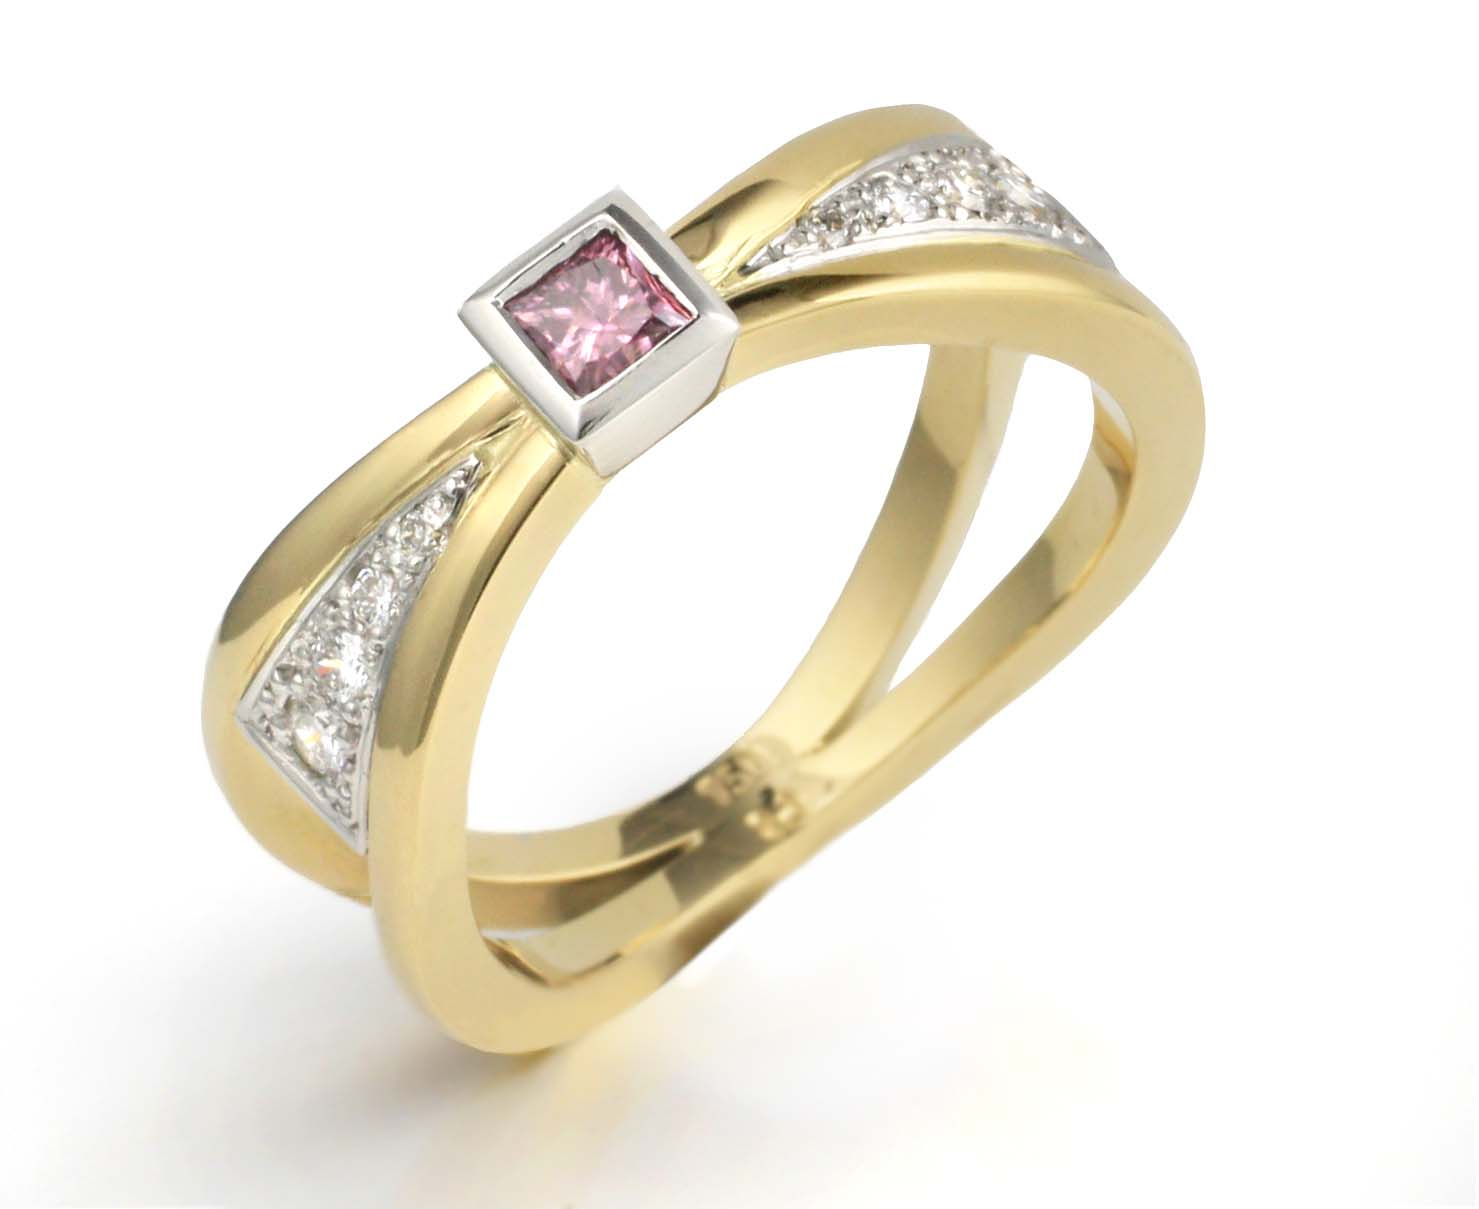 pink diamond ring Adorn Jewels Adelaide jewellery jewelry handmade online jewellery pink diamonds pink sapphire princess cut diamond